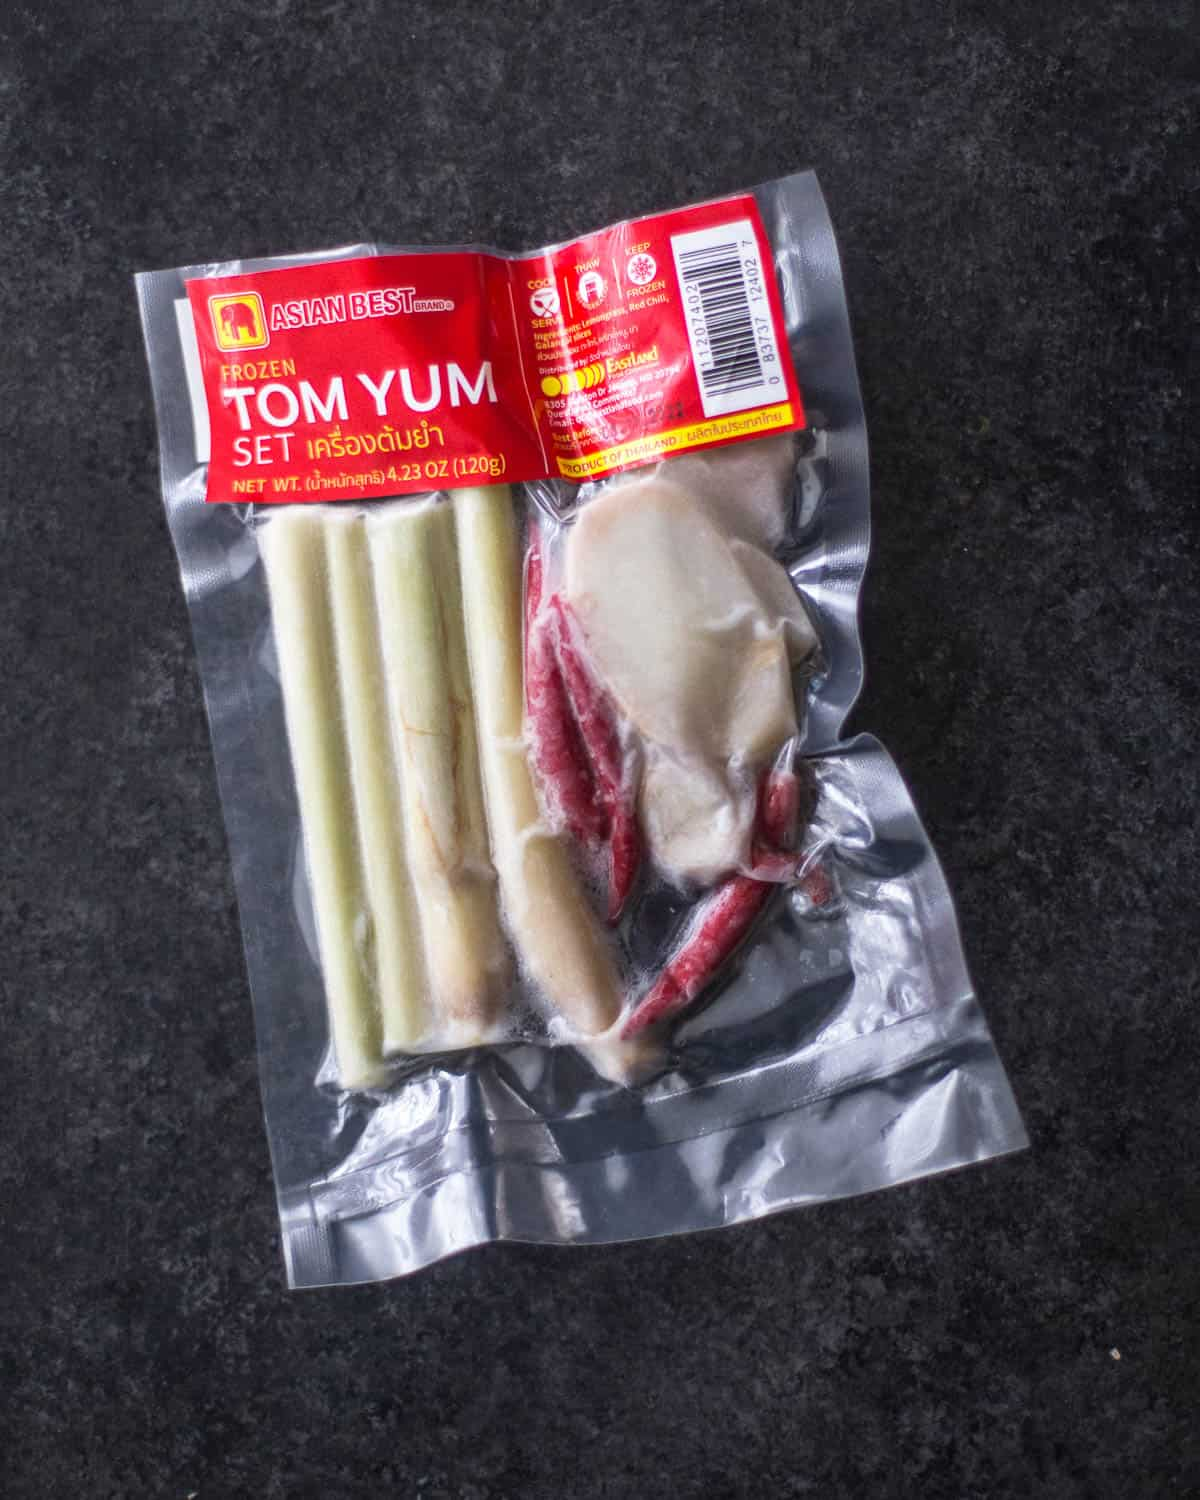 ingredients for Tom Yum Goong